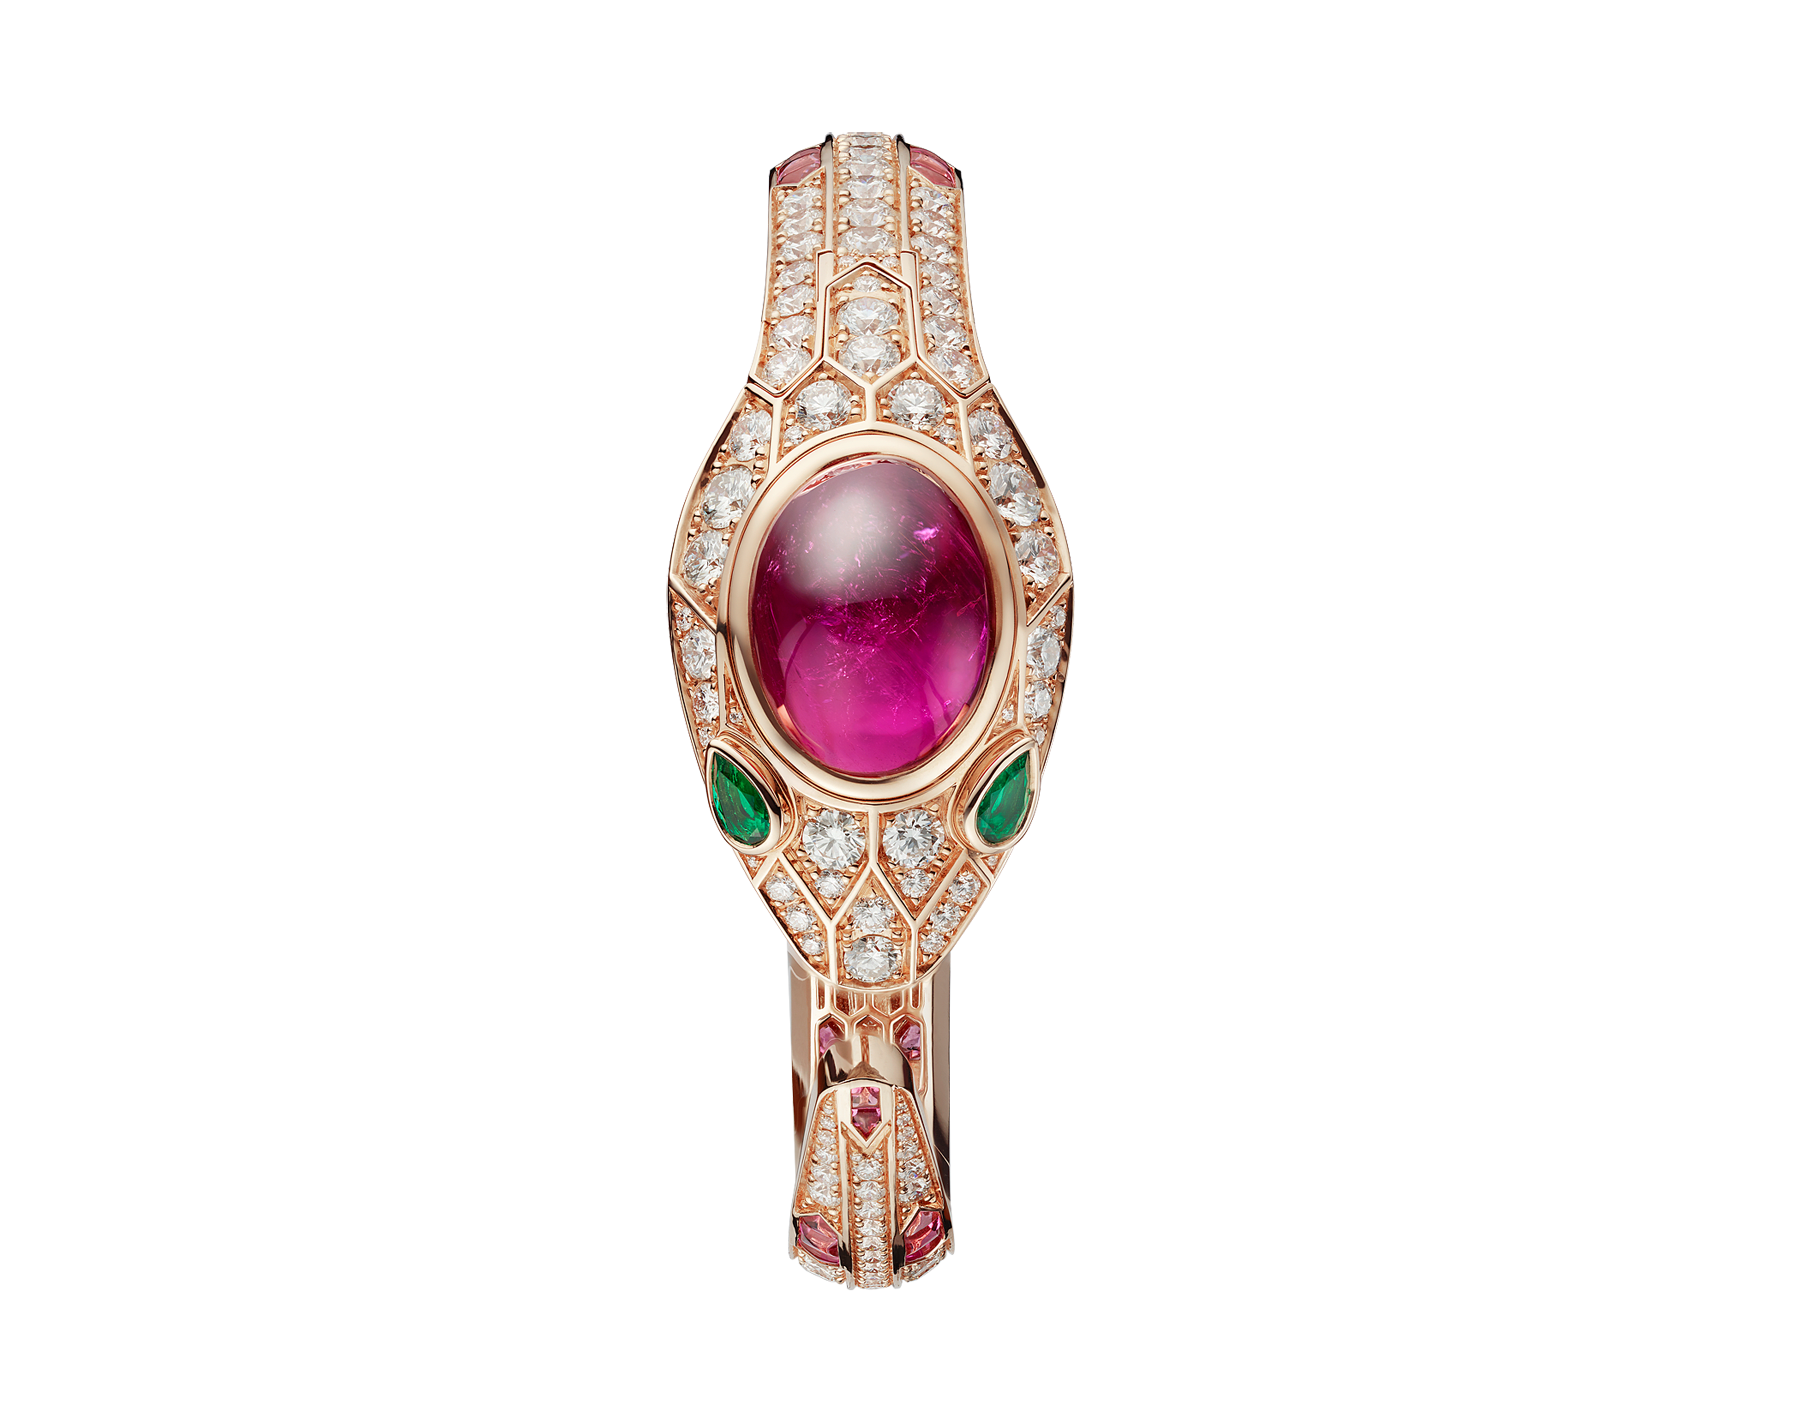 Serpenti Seduttori watch with 18 kt rose gold case and dial, 18 kt rose gold head set with brilliant cut diamonds, one cabochon cut tourmaline and emerald eyes, 18 kt rose gold bracelet set with brilliant cut diamonds and tourmalines. 102616 image 2